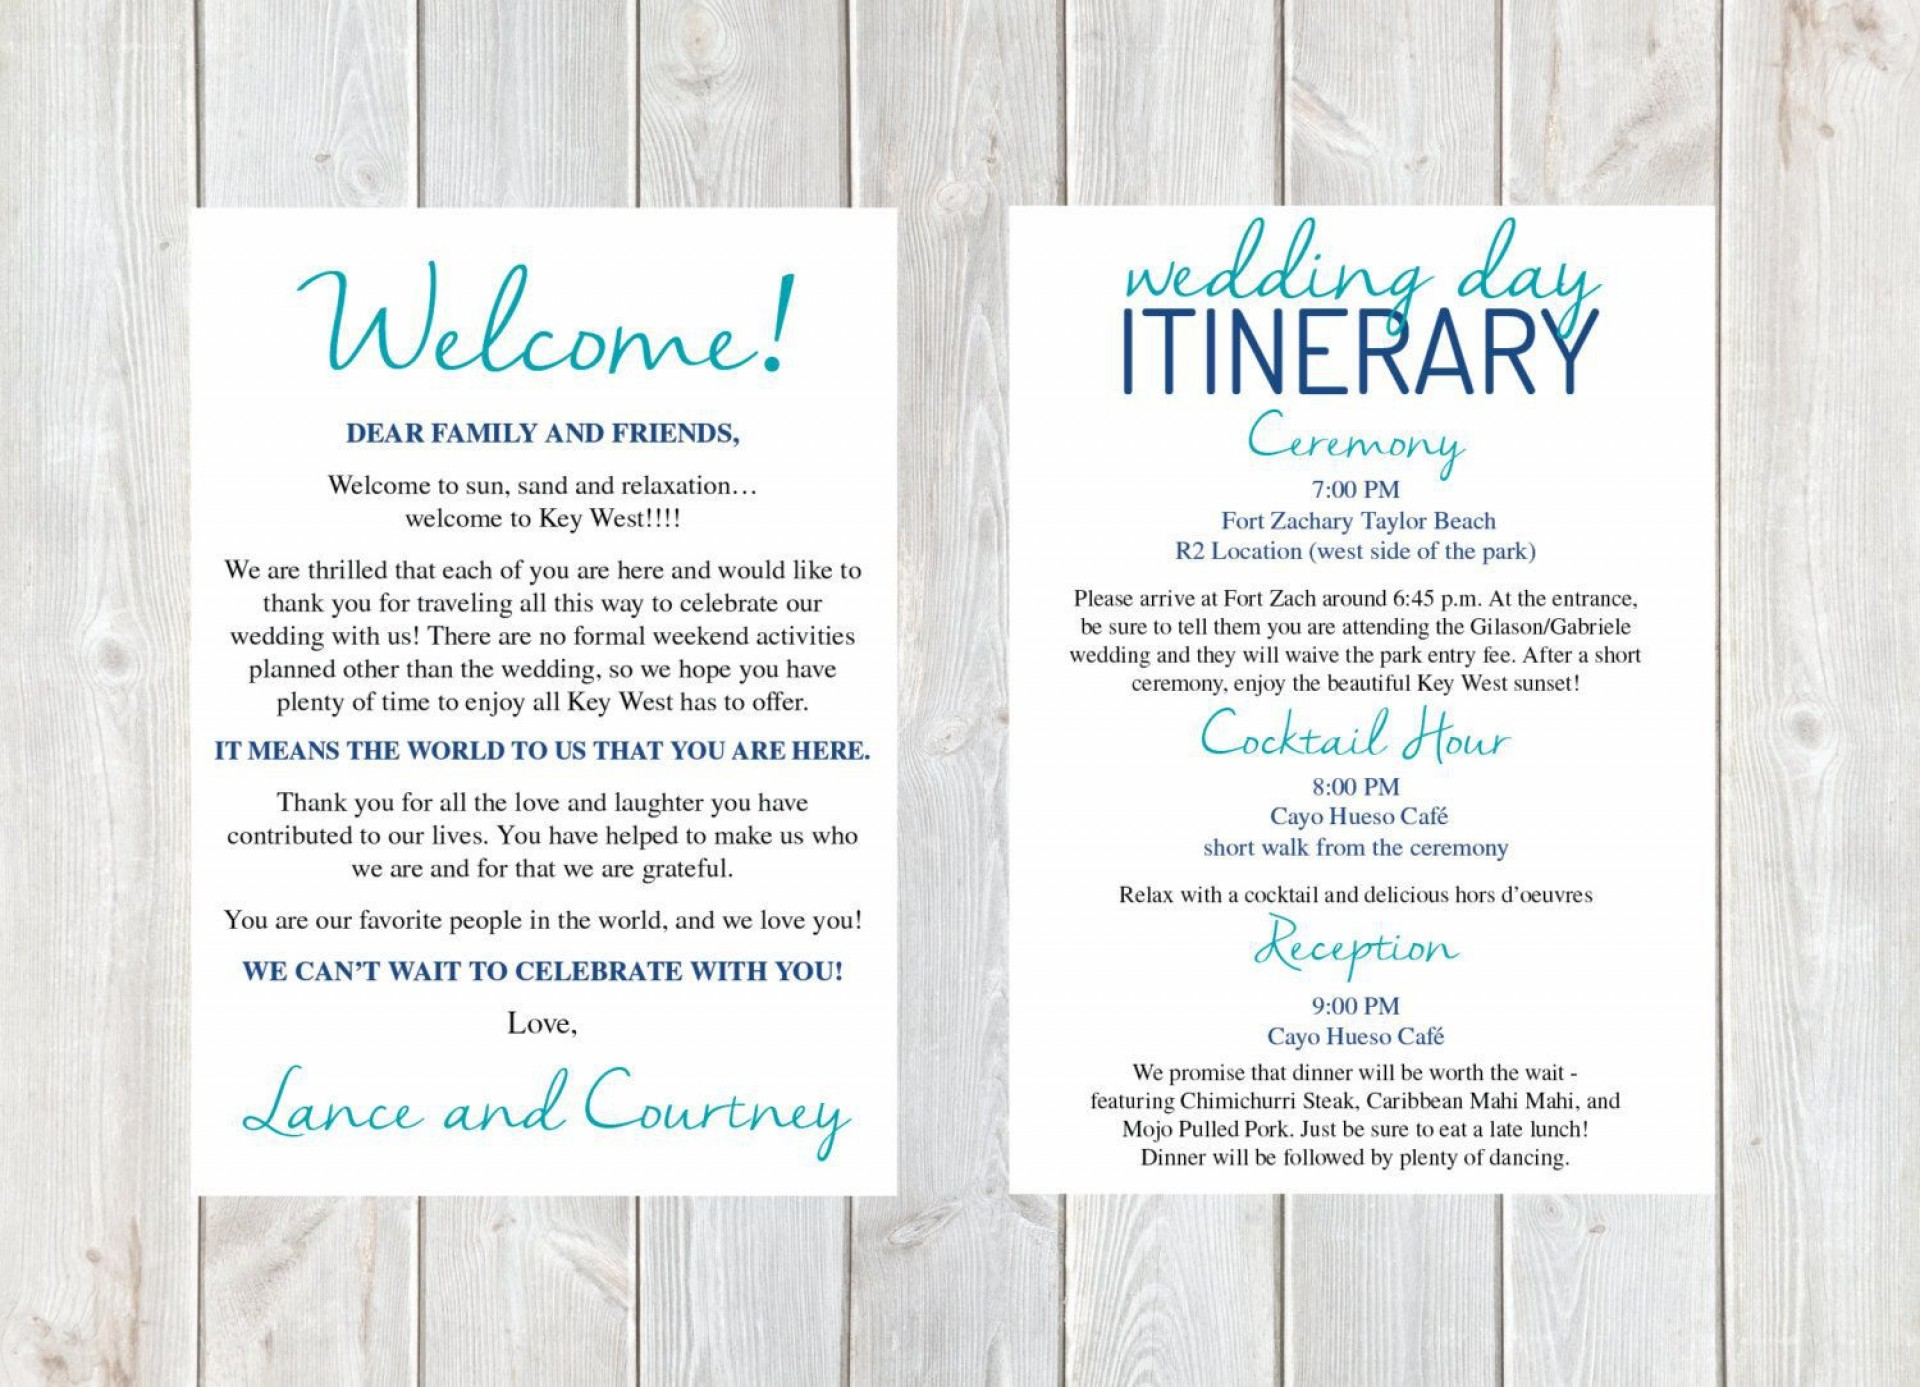 001 Amazing Wedding Guest Welcome Letter Template Sample 1920